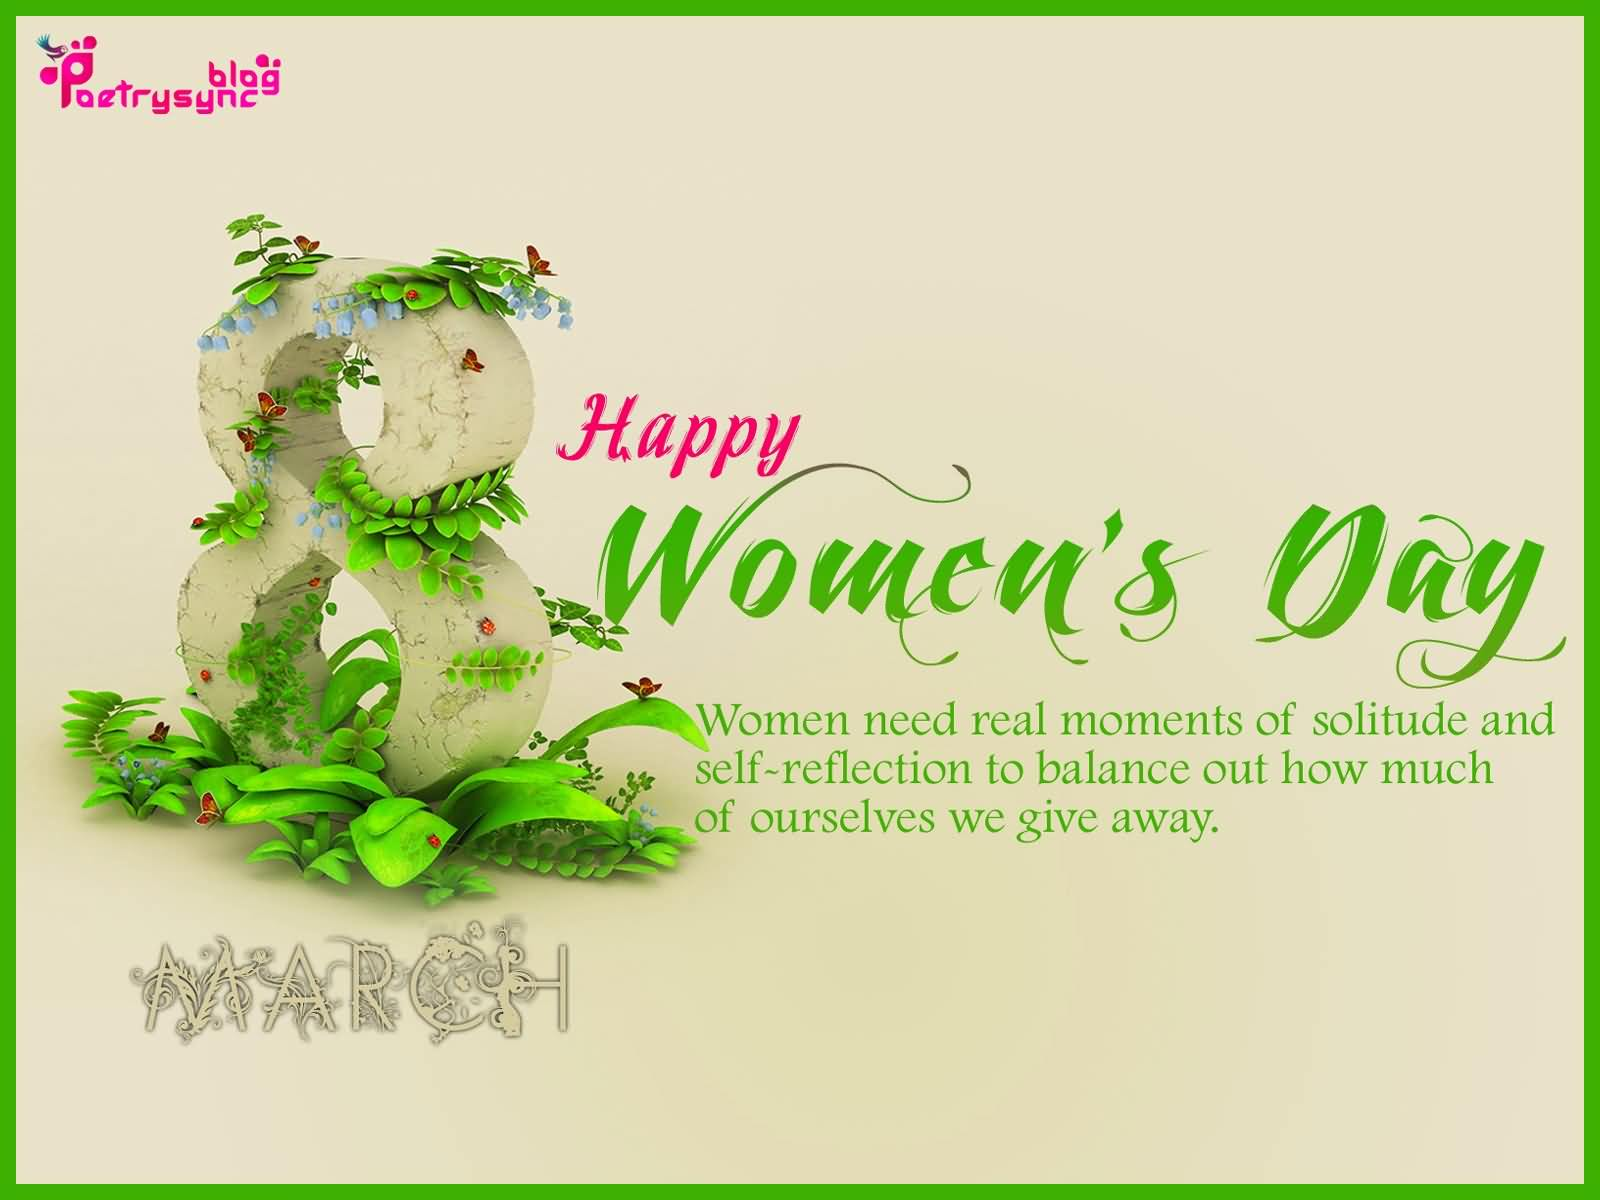 Best Wishes Happy Women's Day Greetings Quotes Image